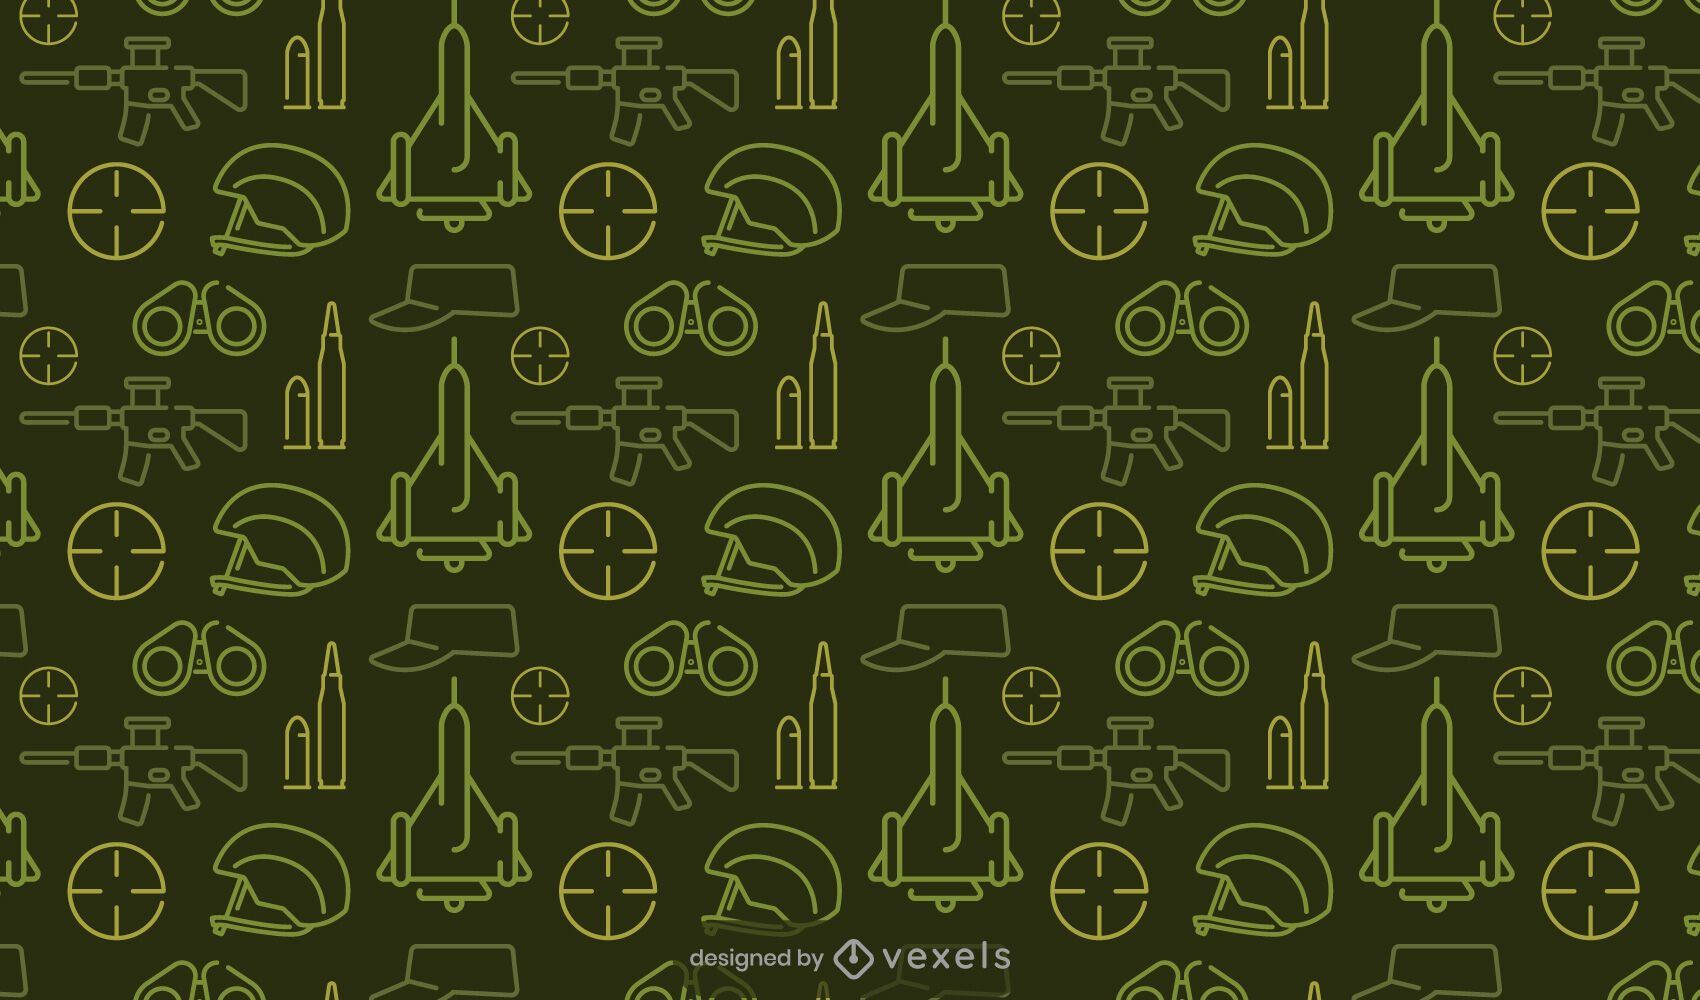 Military elements green pattern design